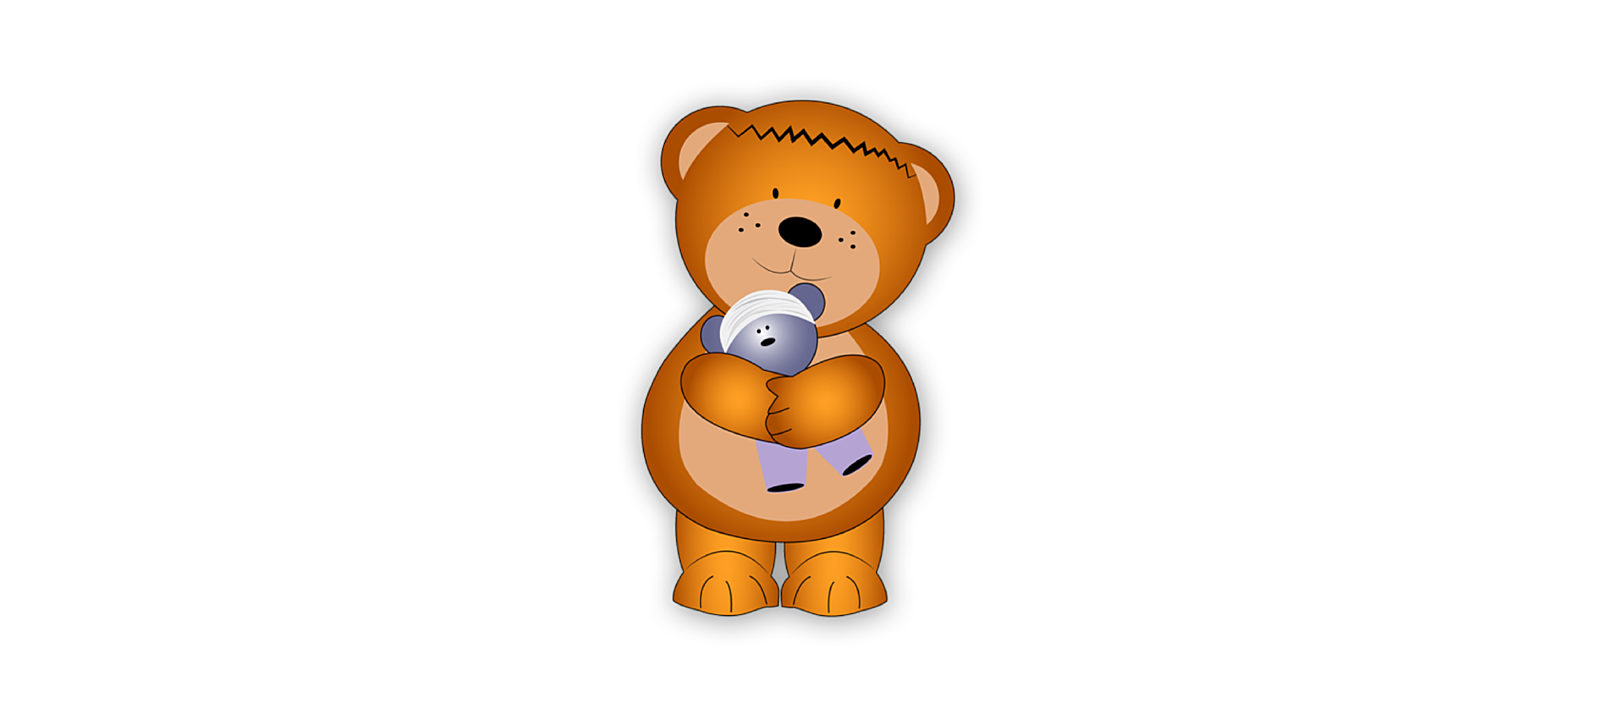 A cartoon of a brown bear with a scar across his forehead holding a blue teddy bear on a white background.